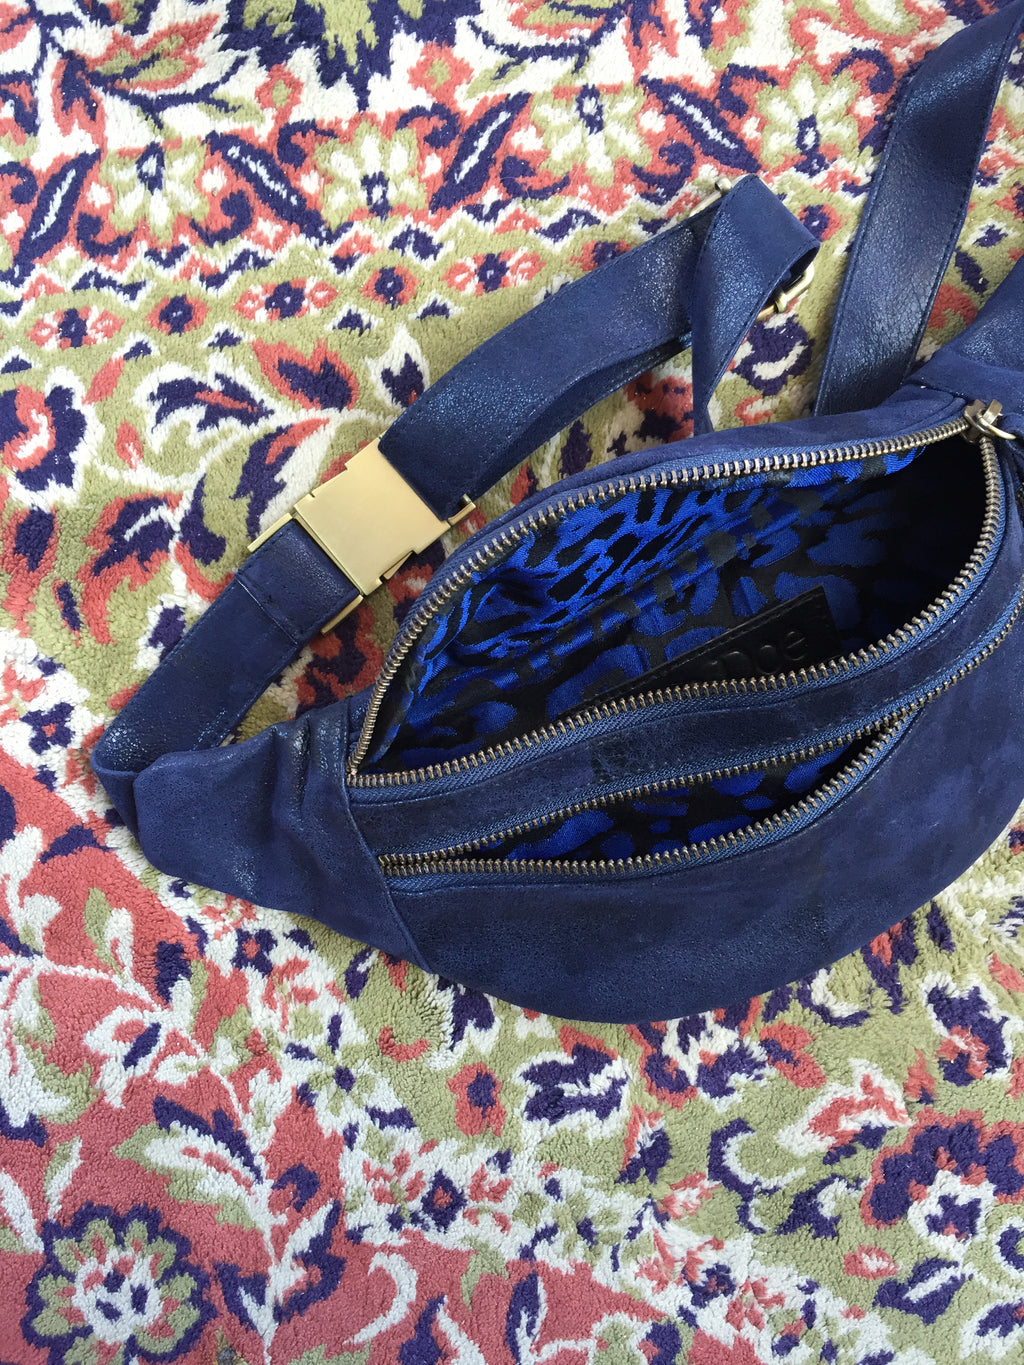 Leather Bum Bag - Navy Leopard